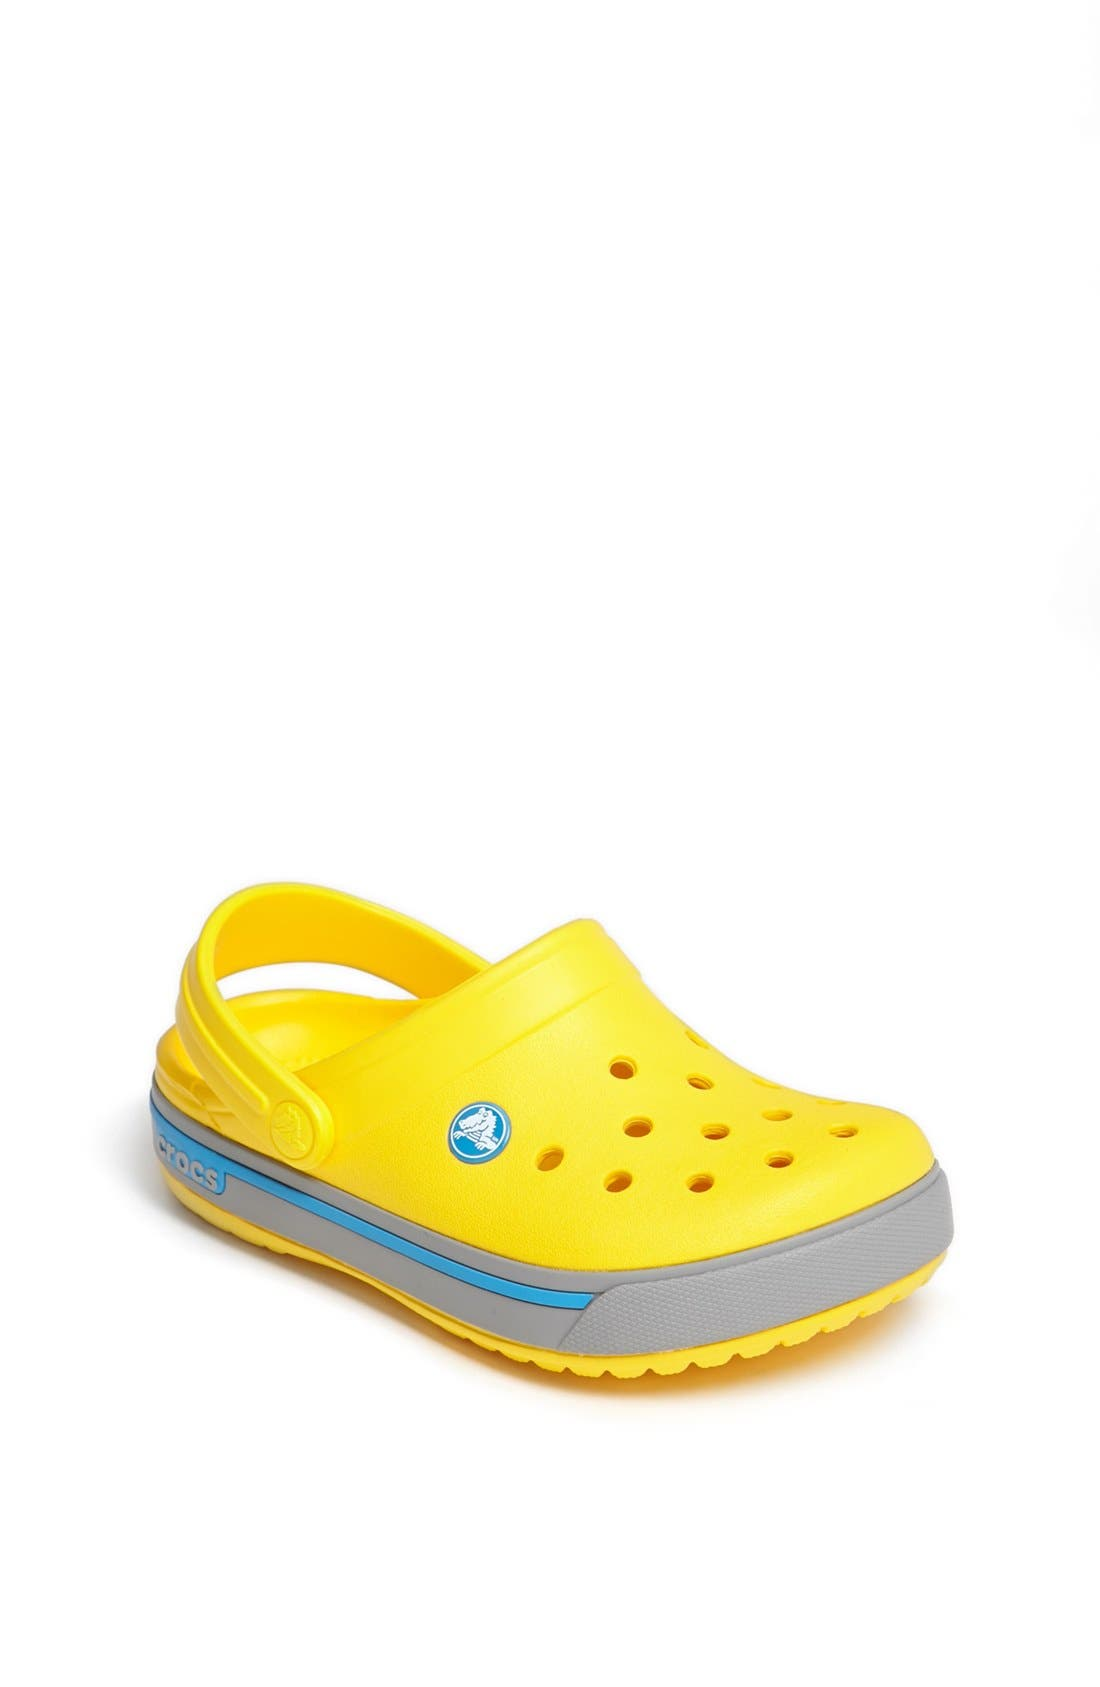 Alternate Image 1 Selected - CROCS™ 'Crocband II.5' Slip-On (Walker, Toddler & Little Kid)